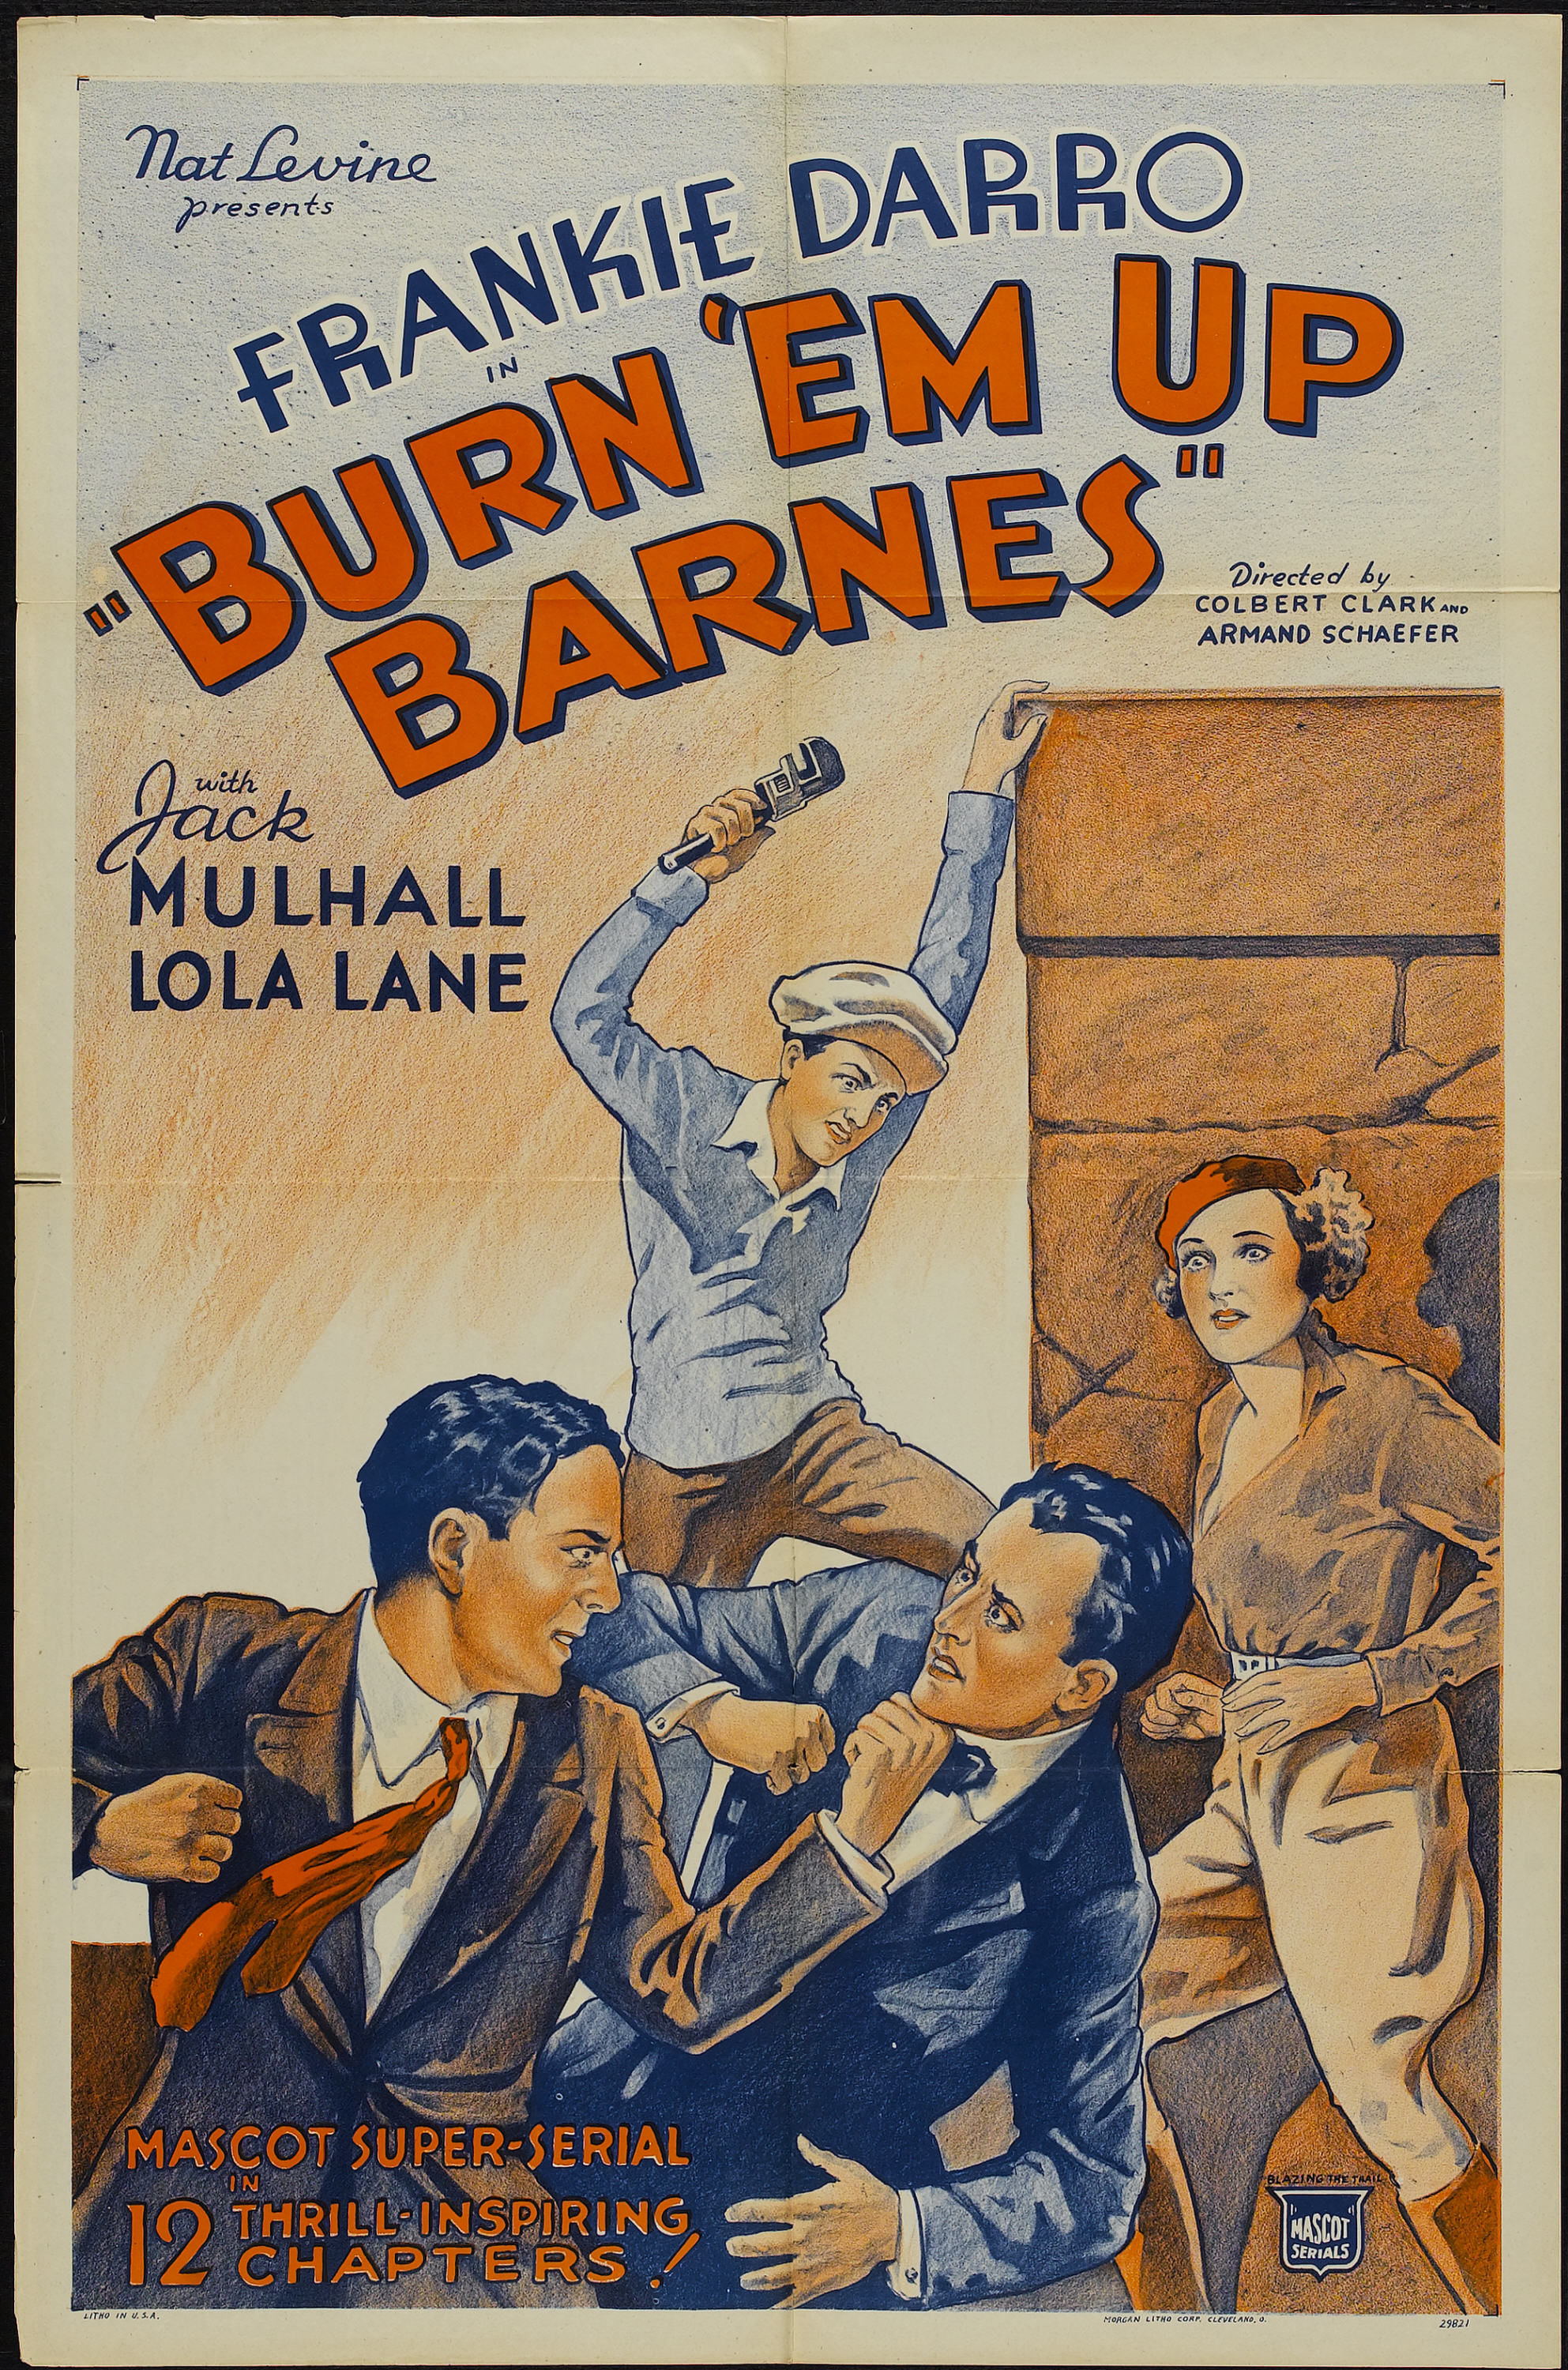 Frankie Darro, Lola Lane, Francis McDonald, and Jack Mulhall in Burn 'Em Up Barnes (1934)